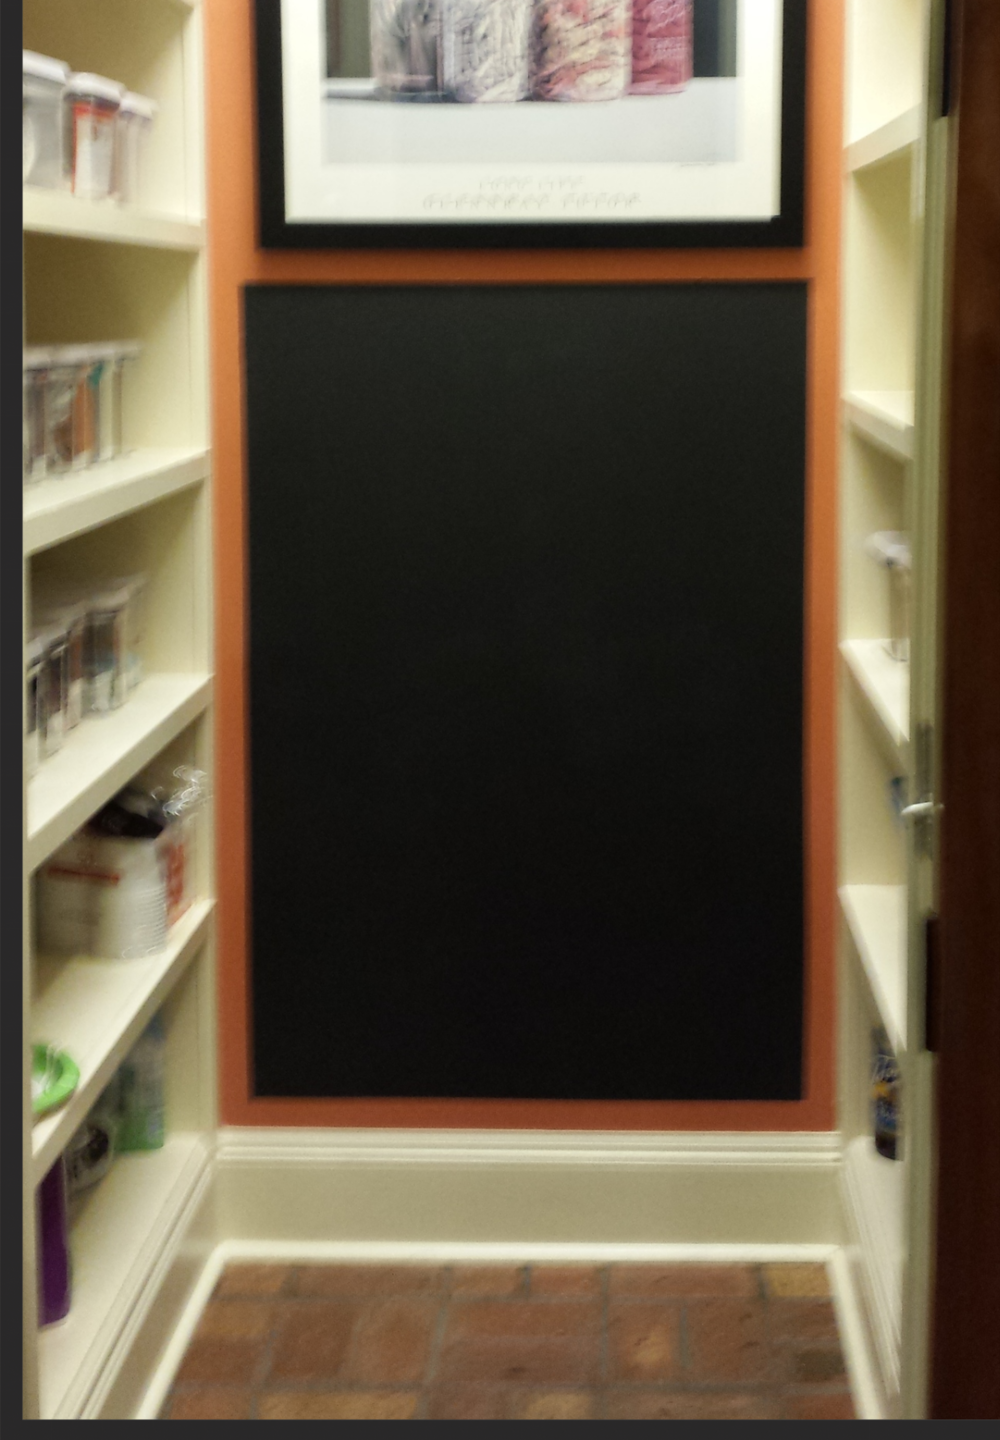 Finished chalkboard wall